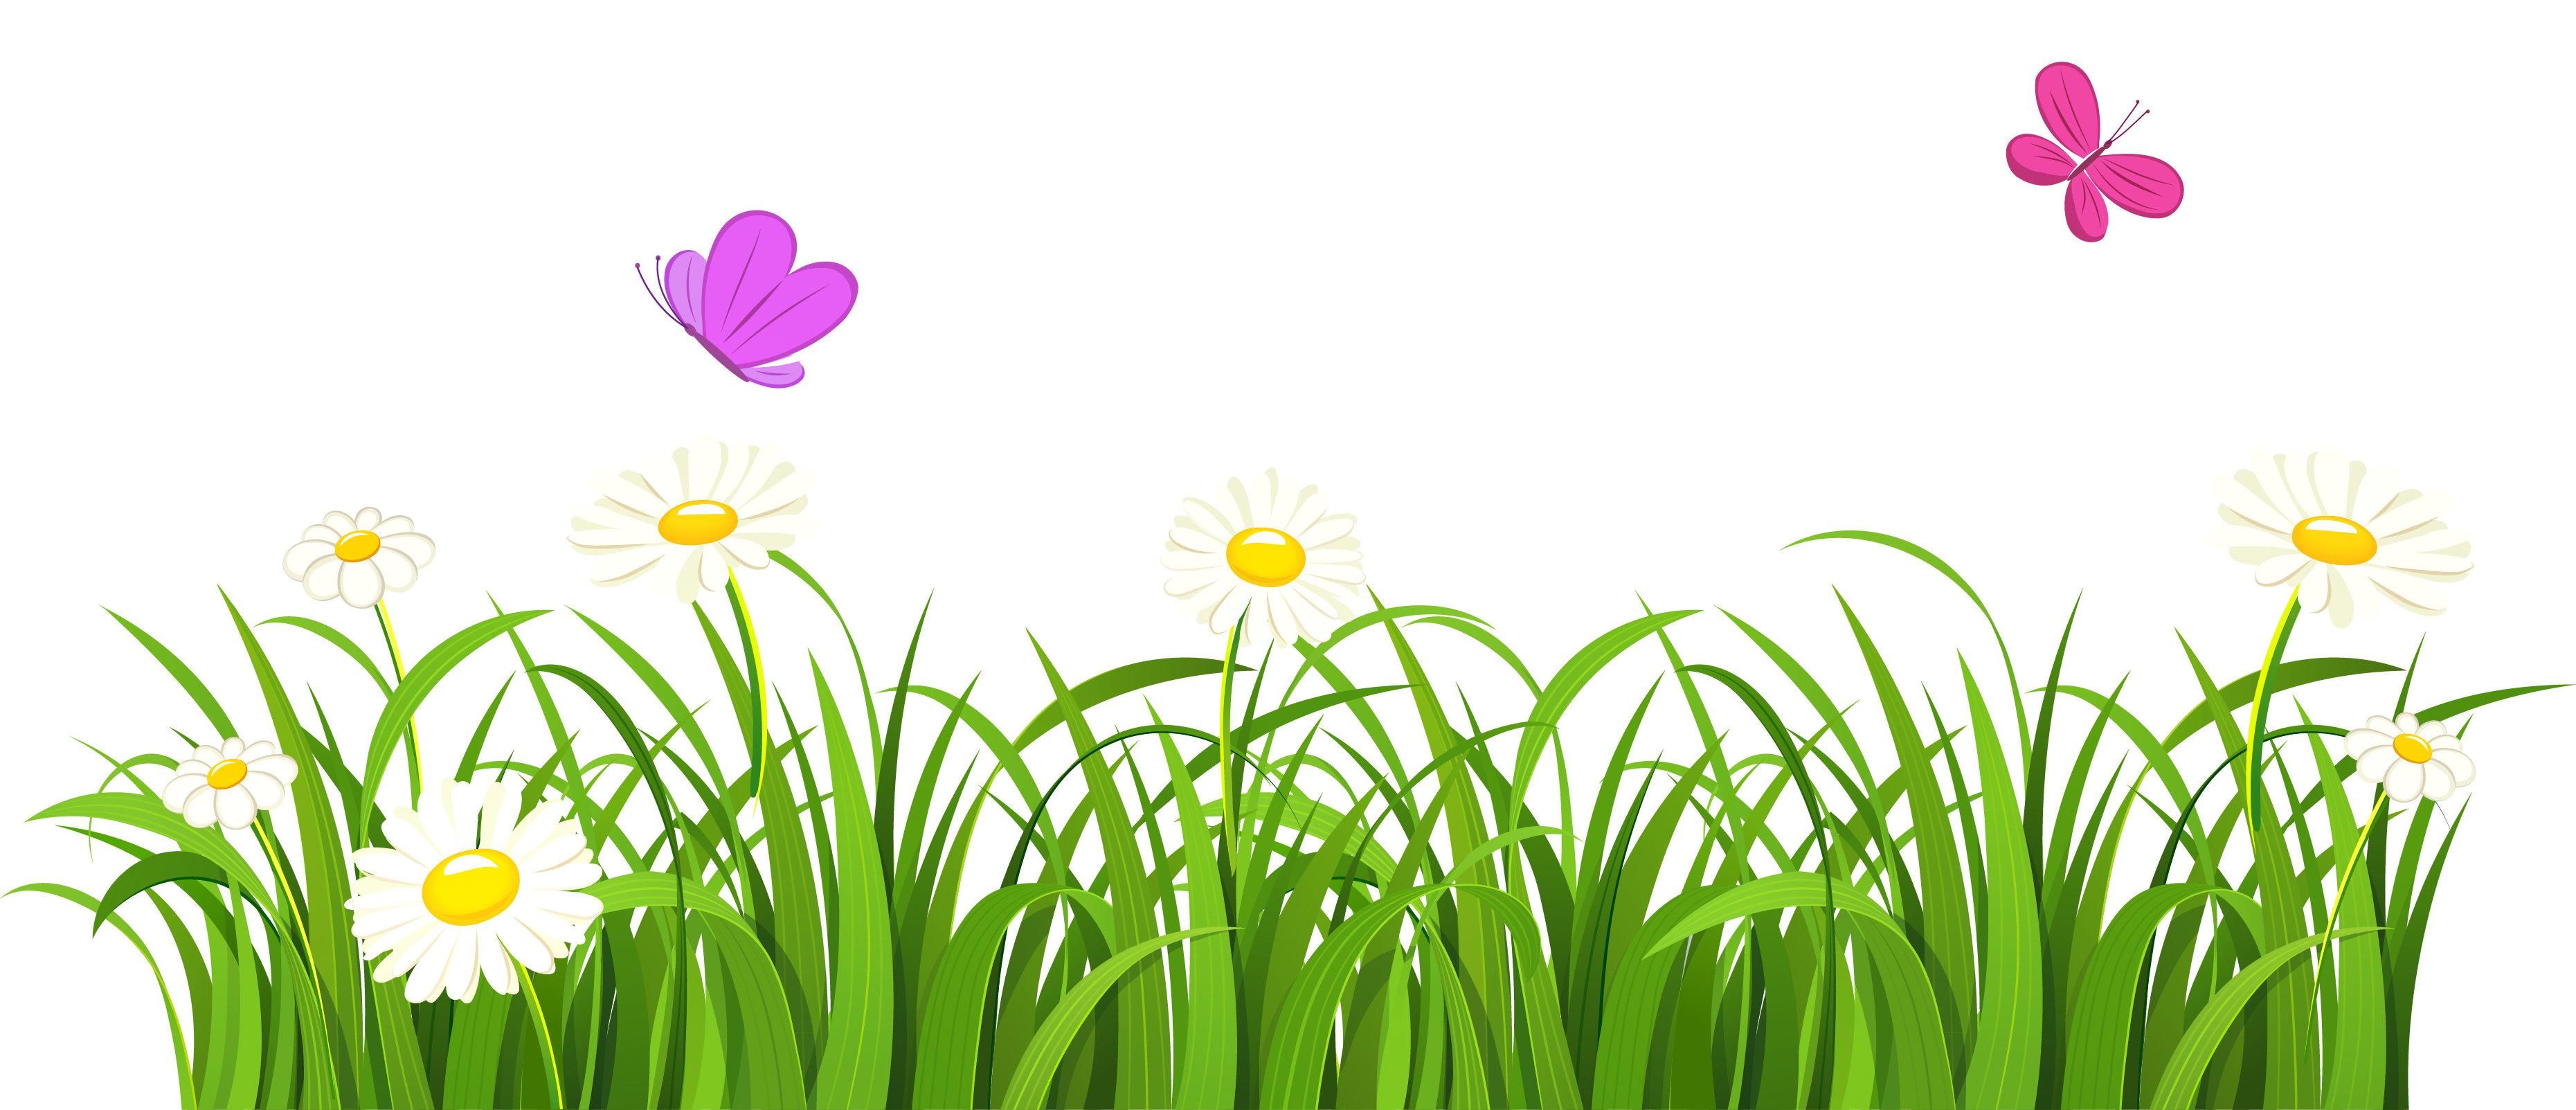 Flower clipart transparent background png library stock Grass clipart transparent background - ClipartFest png library stock